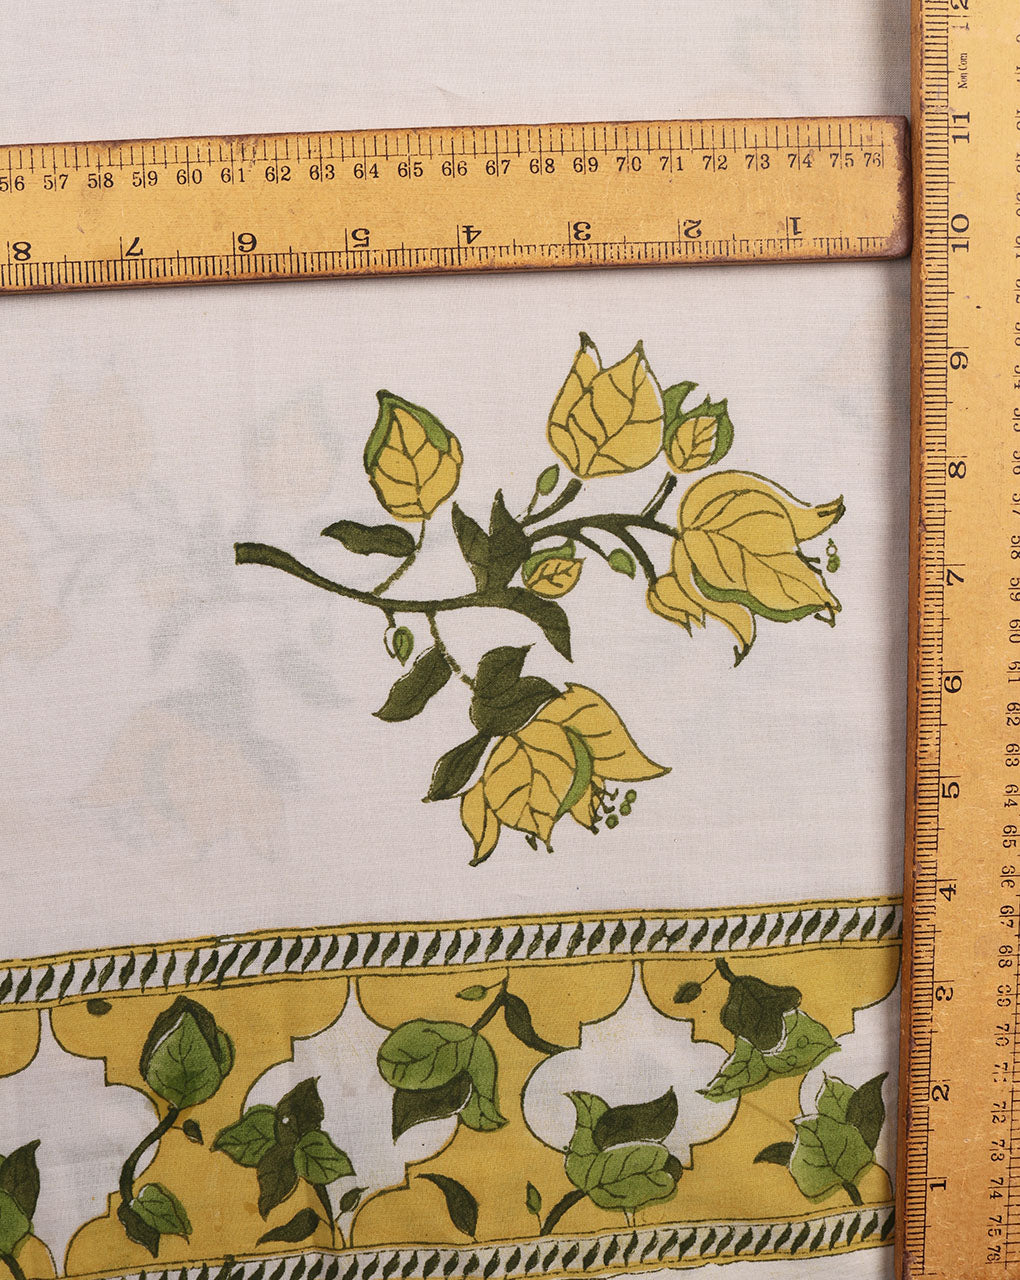 Beige & Yellow Exclusive Design Floral Hand Block Cotton Fabric With Border - Fabriclore.com